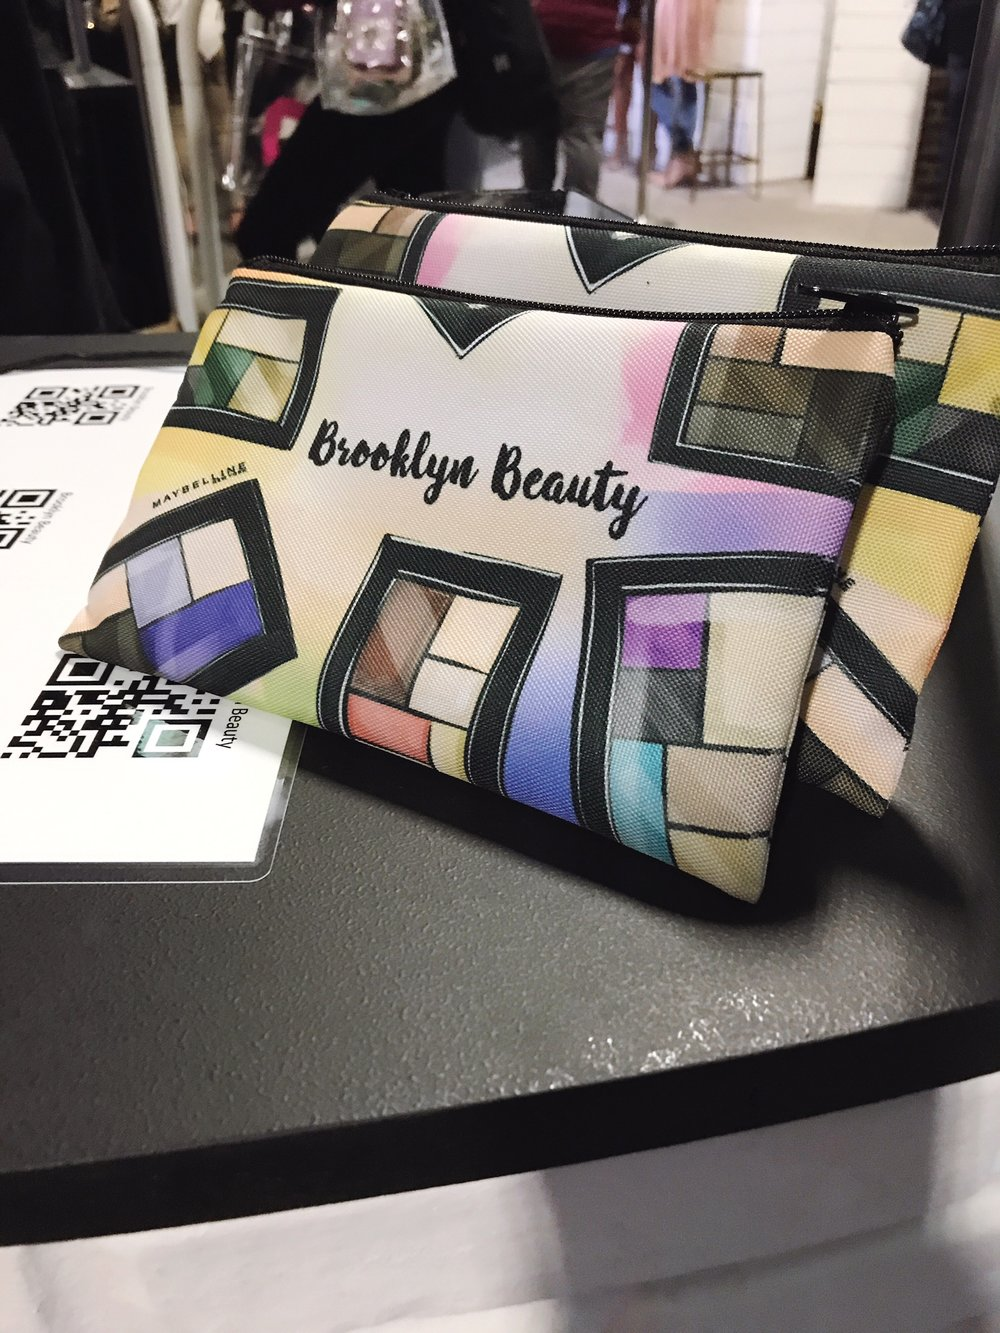 Makeup bag designed by fashion illustrator Rongrong DeVoe for Maybelline New York